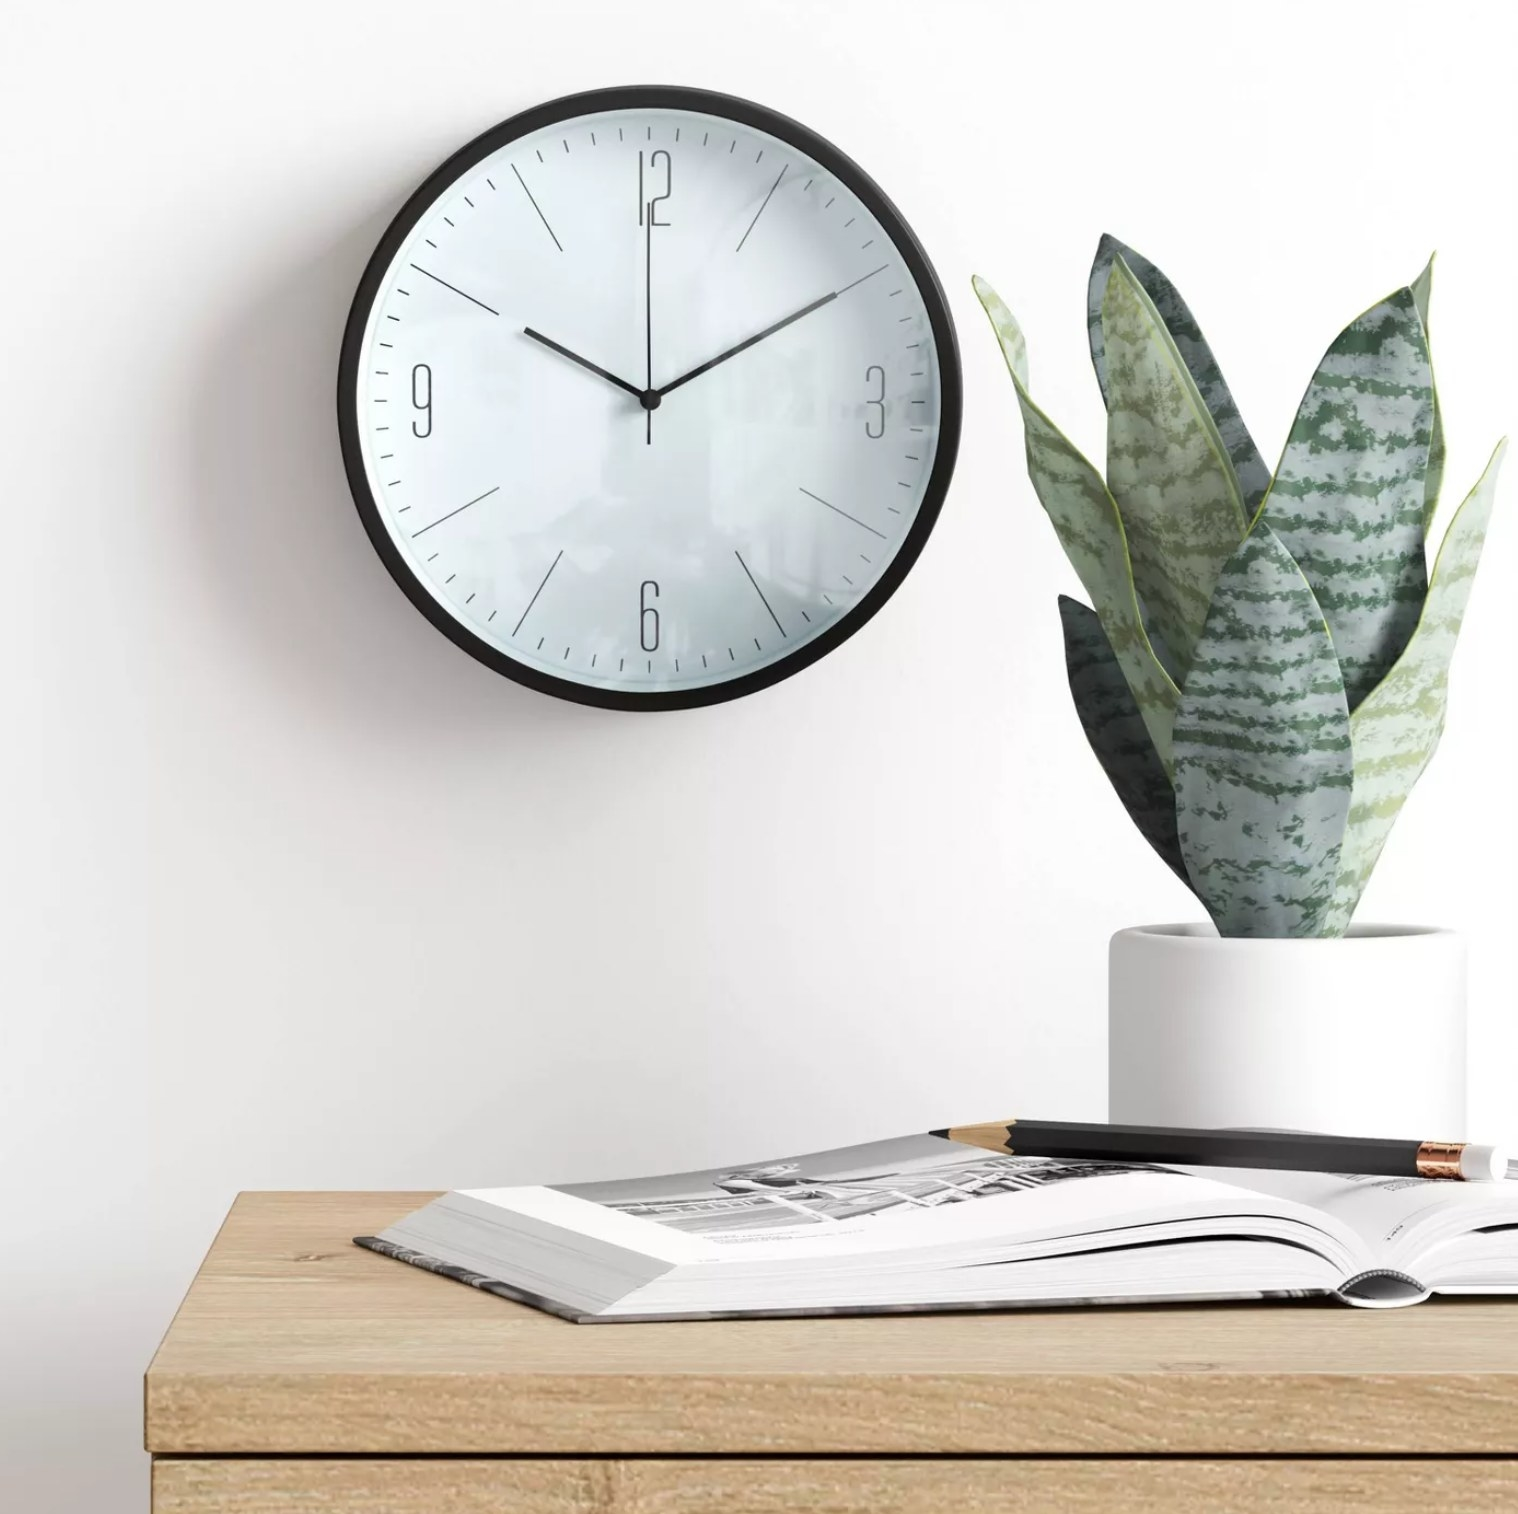 the clock hanging on the wall above a plant and a book